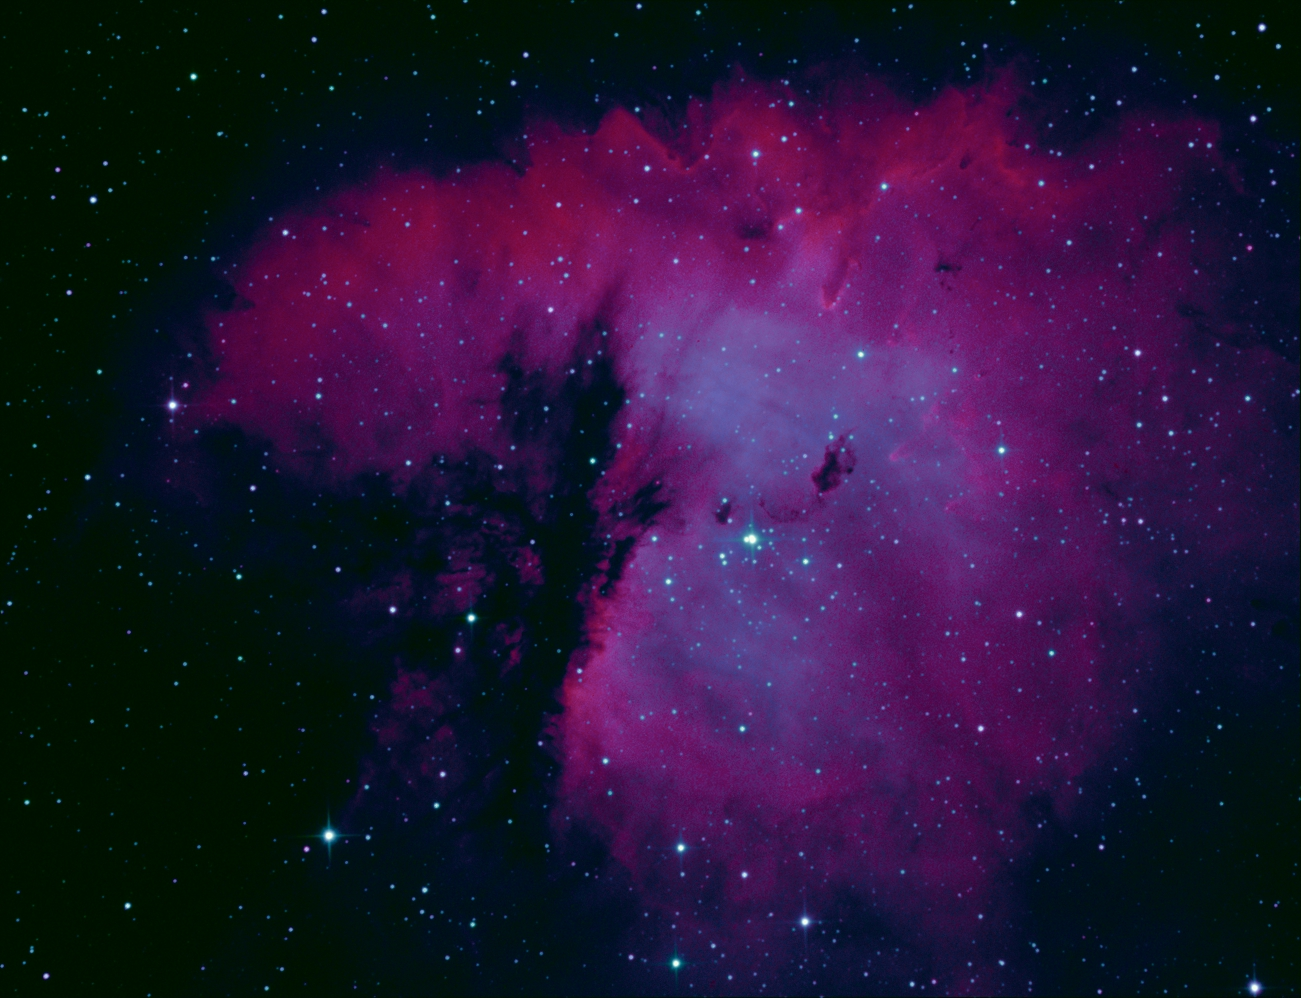 NGC_281_Pacman_nebula_Bicolor_synthetic green_7.jpg